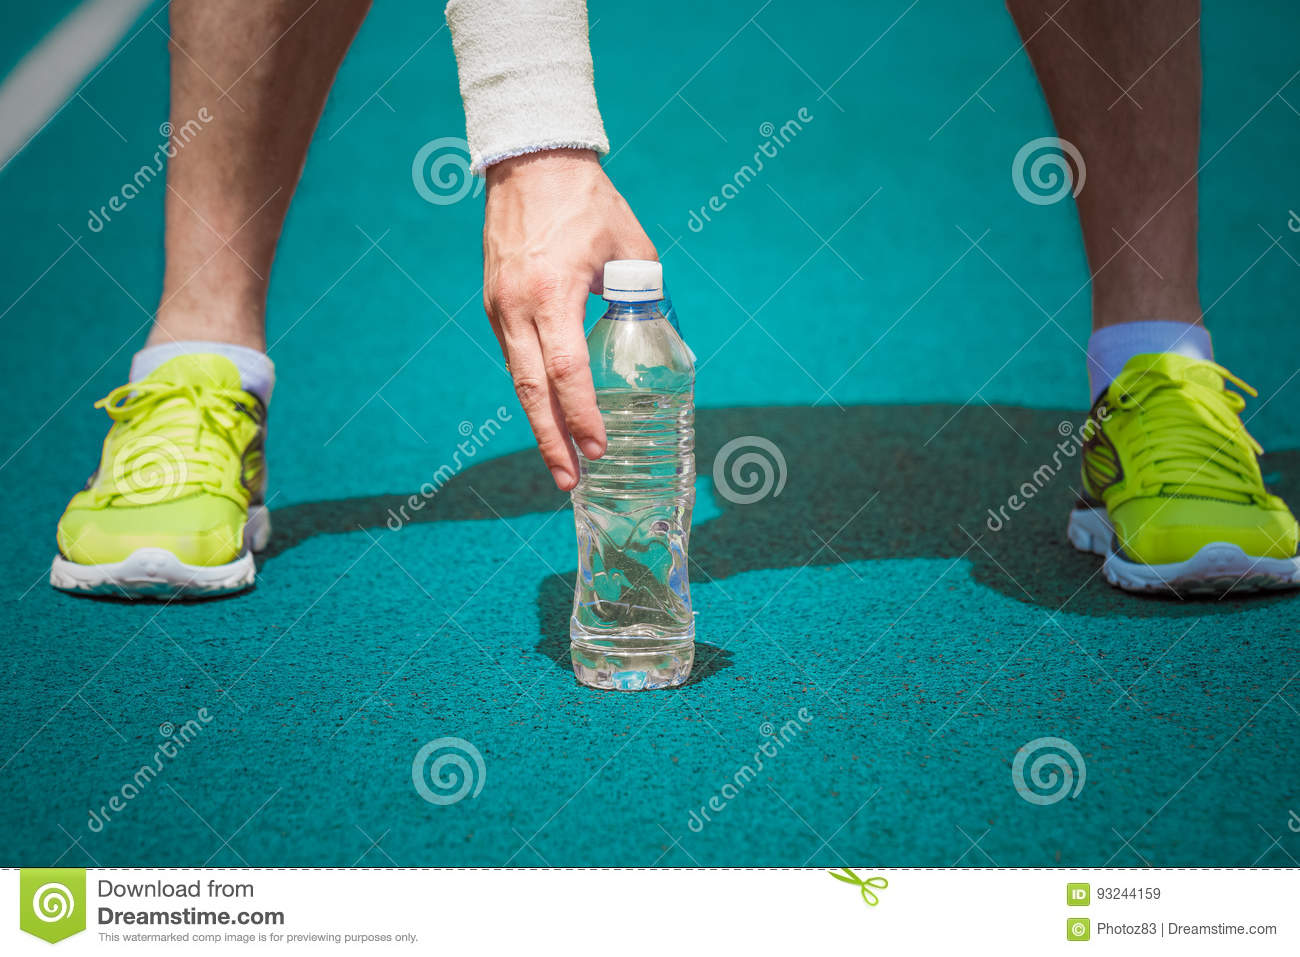 Close up of male jogger holding plastic bottle of water on running track